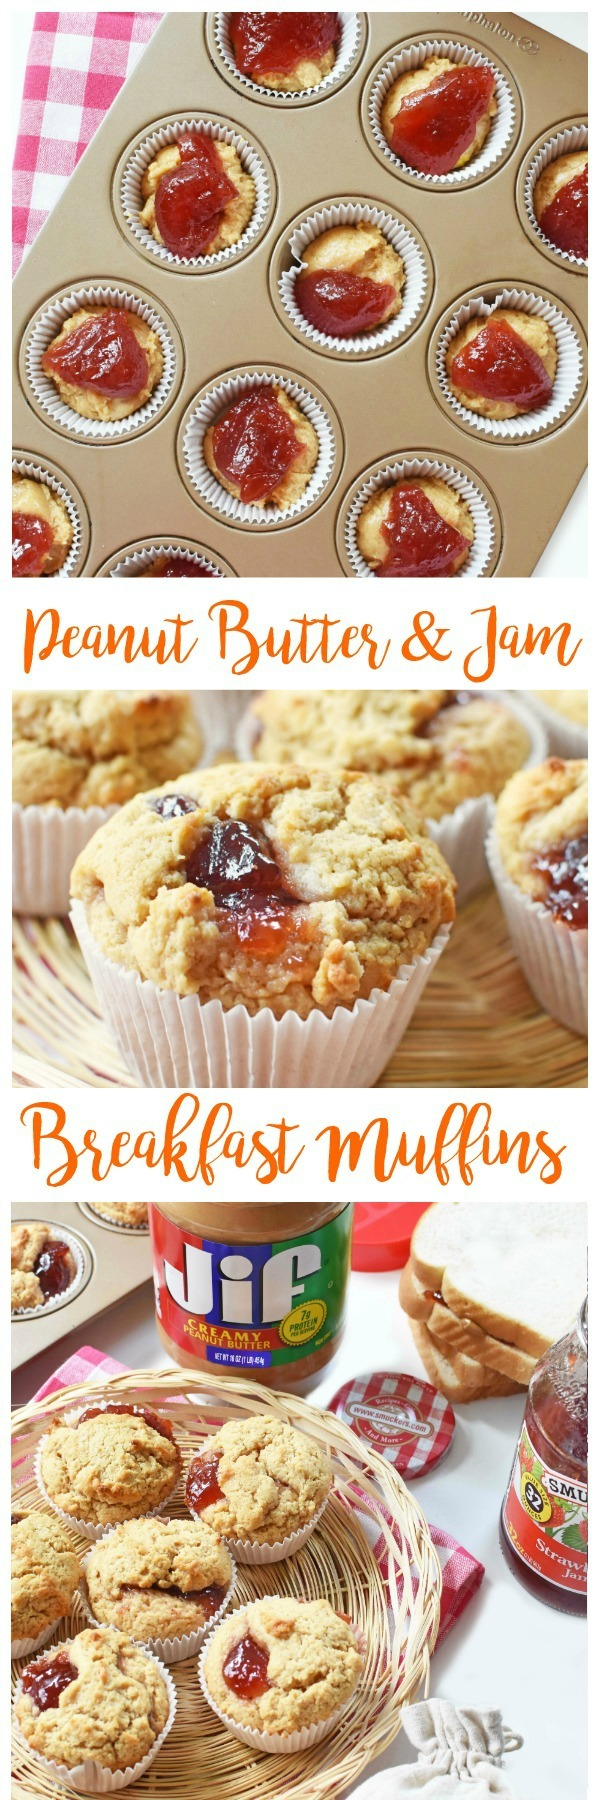 Peanut Butter and Jam Muffins perfect for breakfast or a lunchbox snack!